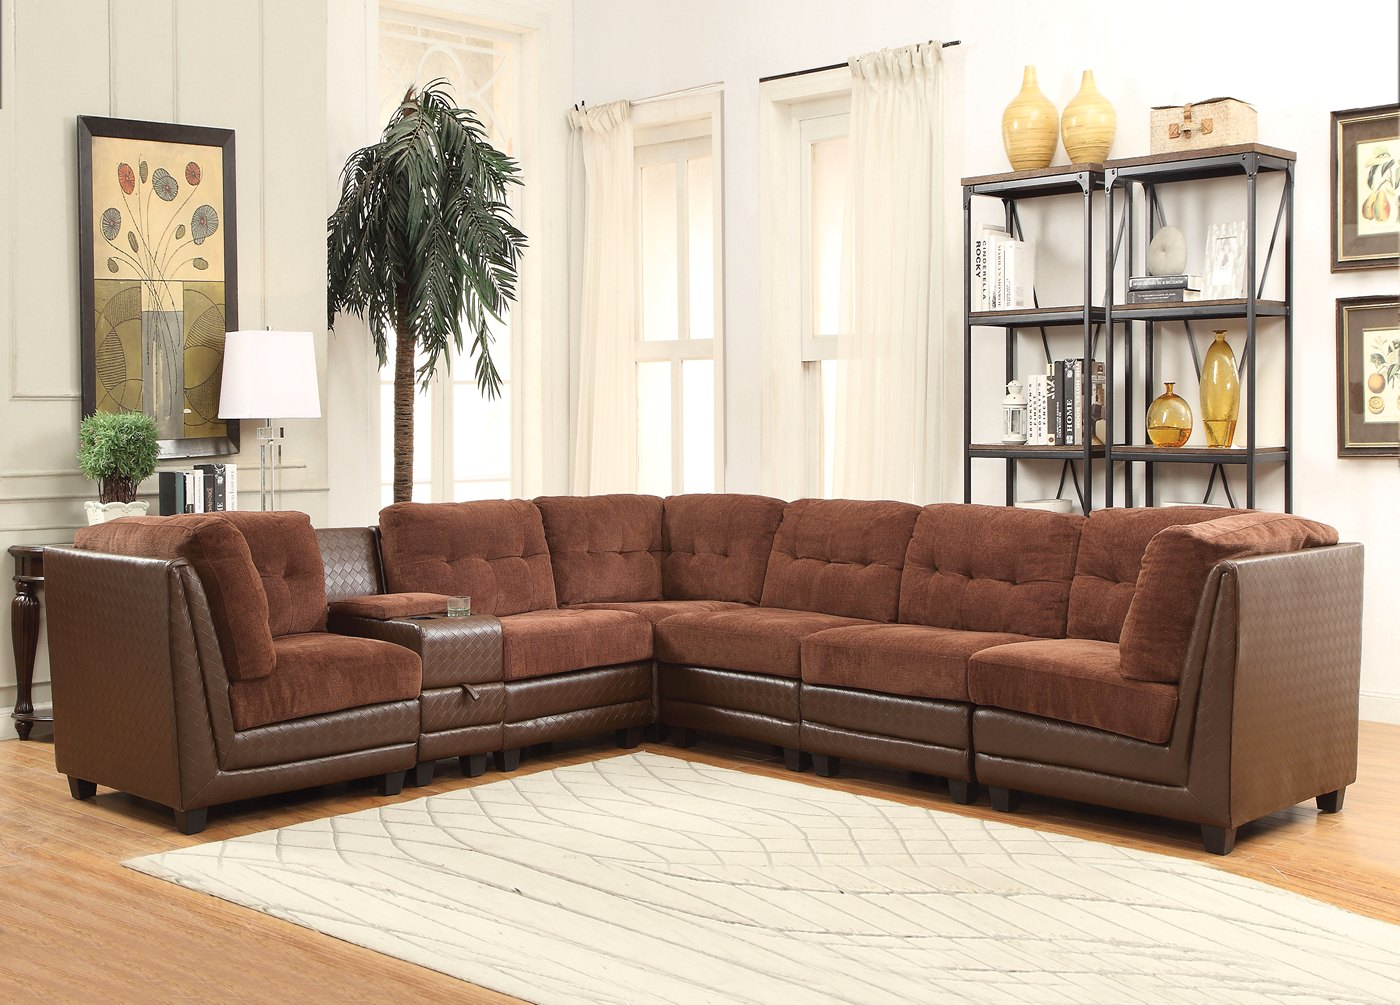 Valen 7-pc Casual Modular Sectional Sofa in Brown Chenille ...